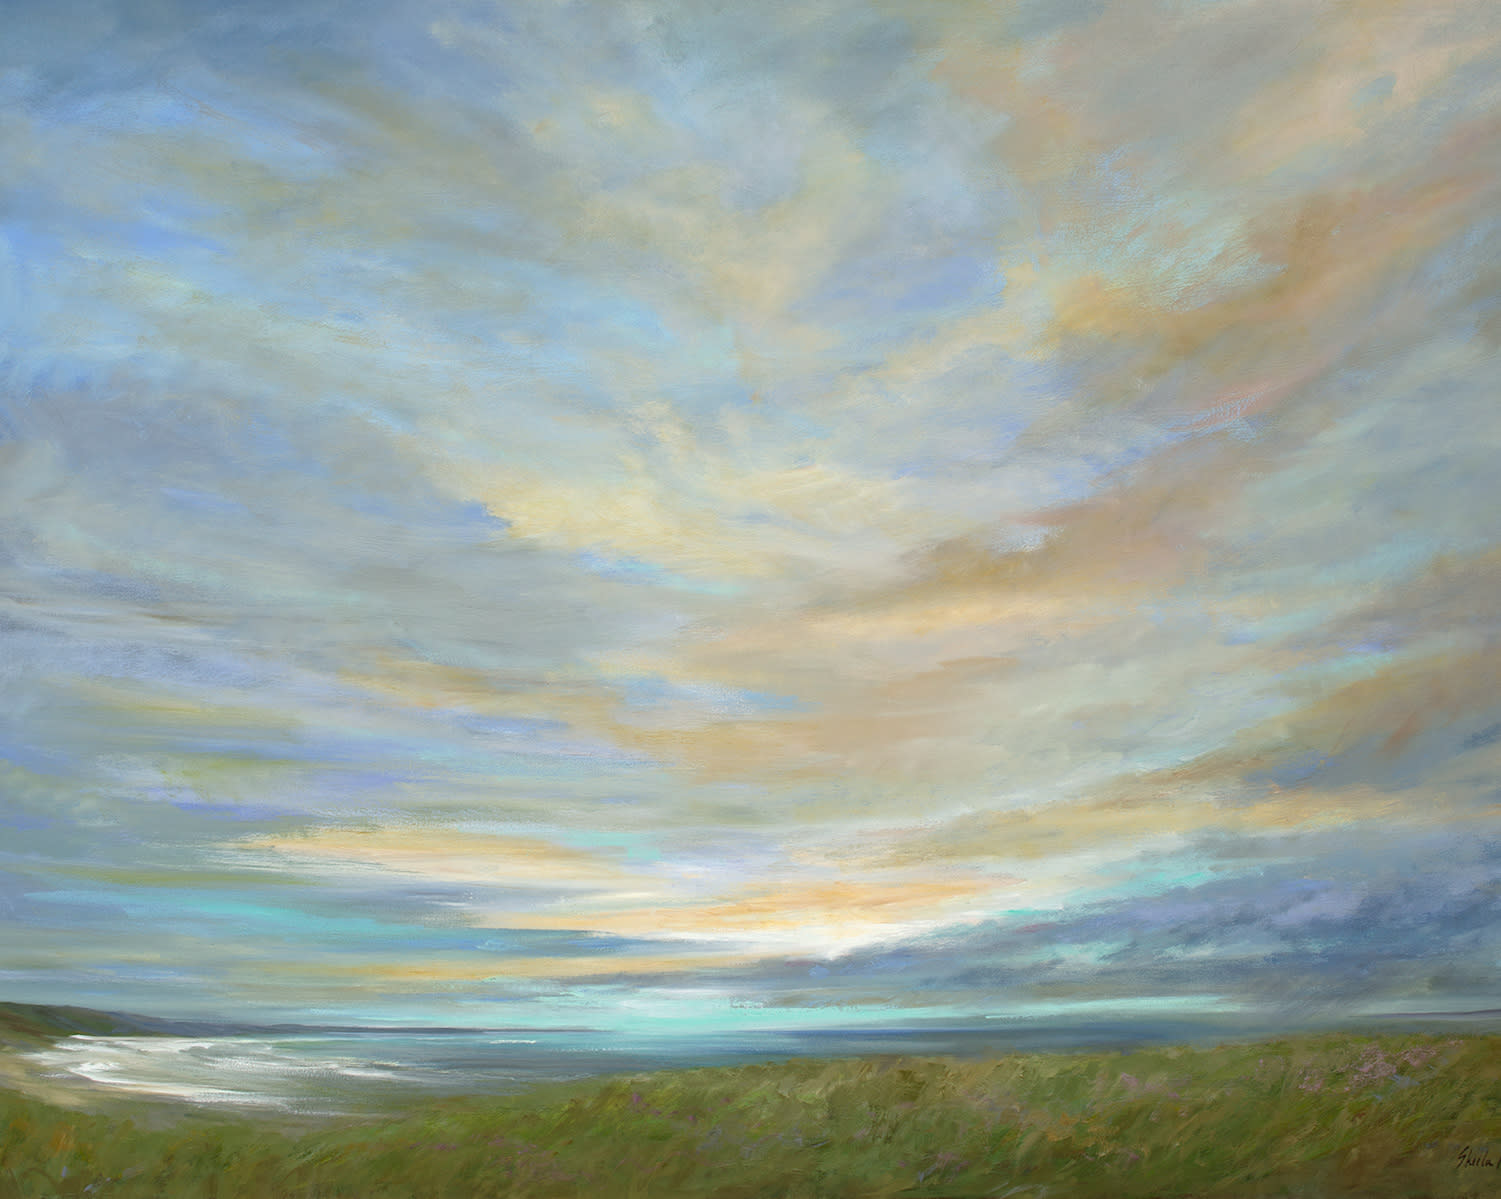 4248 new2016coastalsky42x58oil armwfz